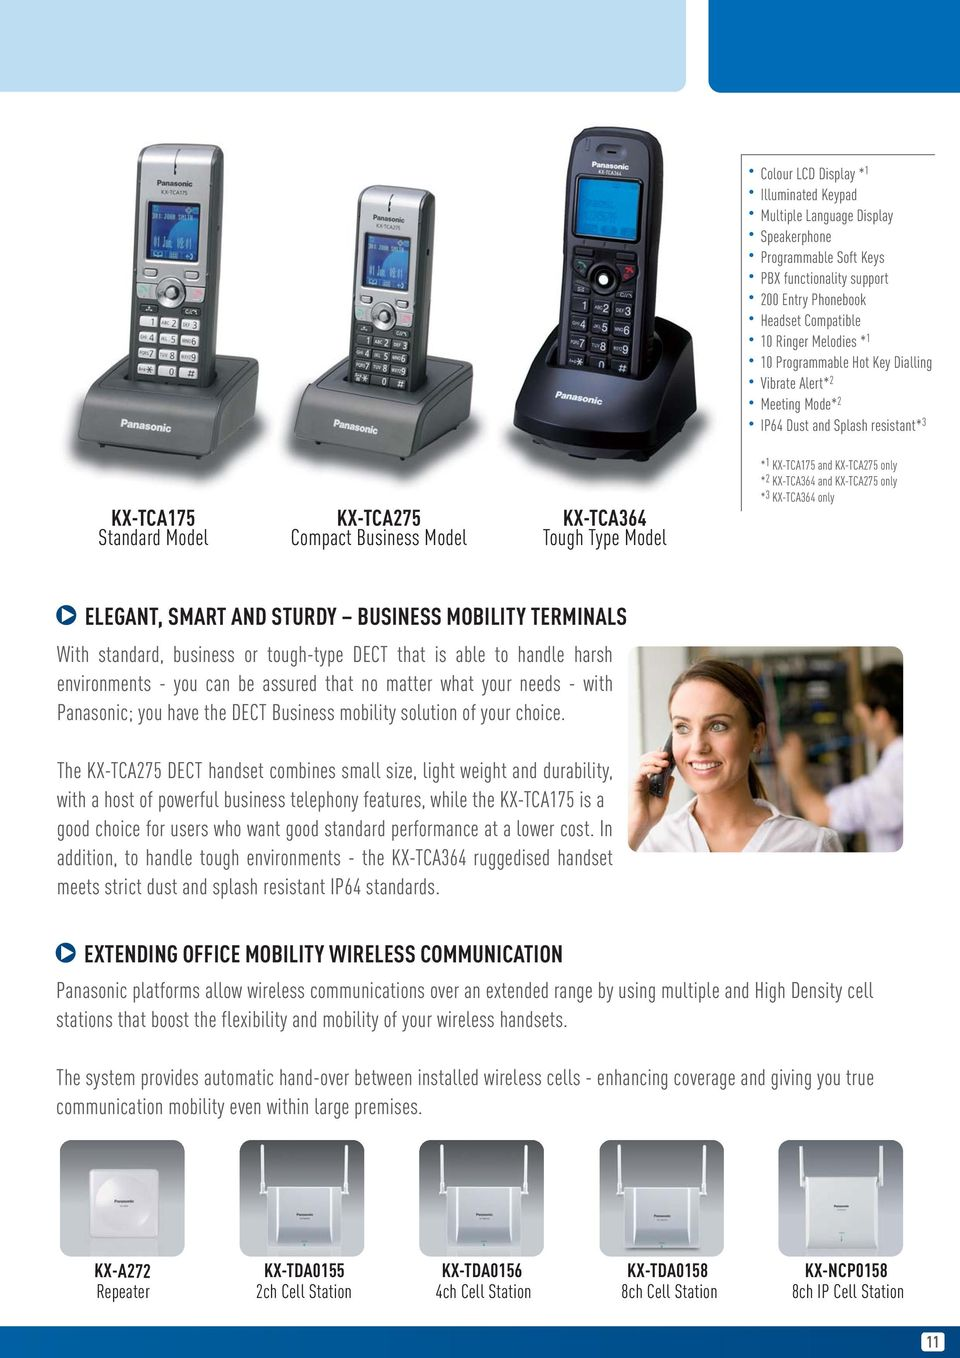 KX-TCA275 only * 2 KX-TCA364 and KX-TCA275 only * 3 KX-TCA364 only ELEGANT, SMART AND STURDY BUSINESS MOBILITY TERMINALS With standard, business or tough-type DECT that is able to handle harsh